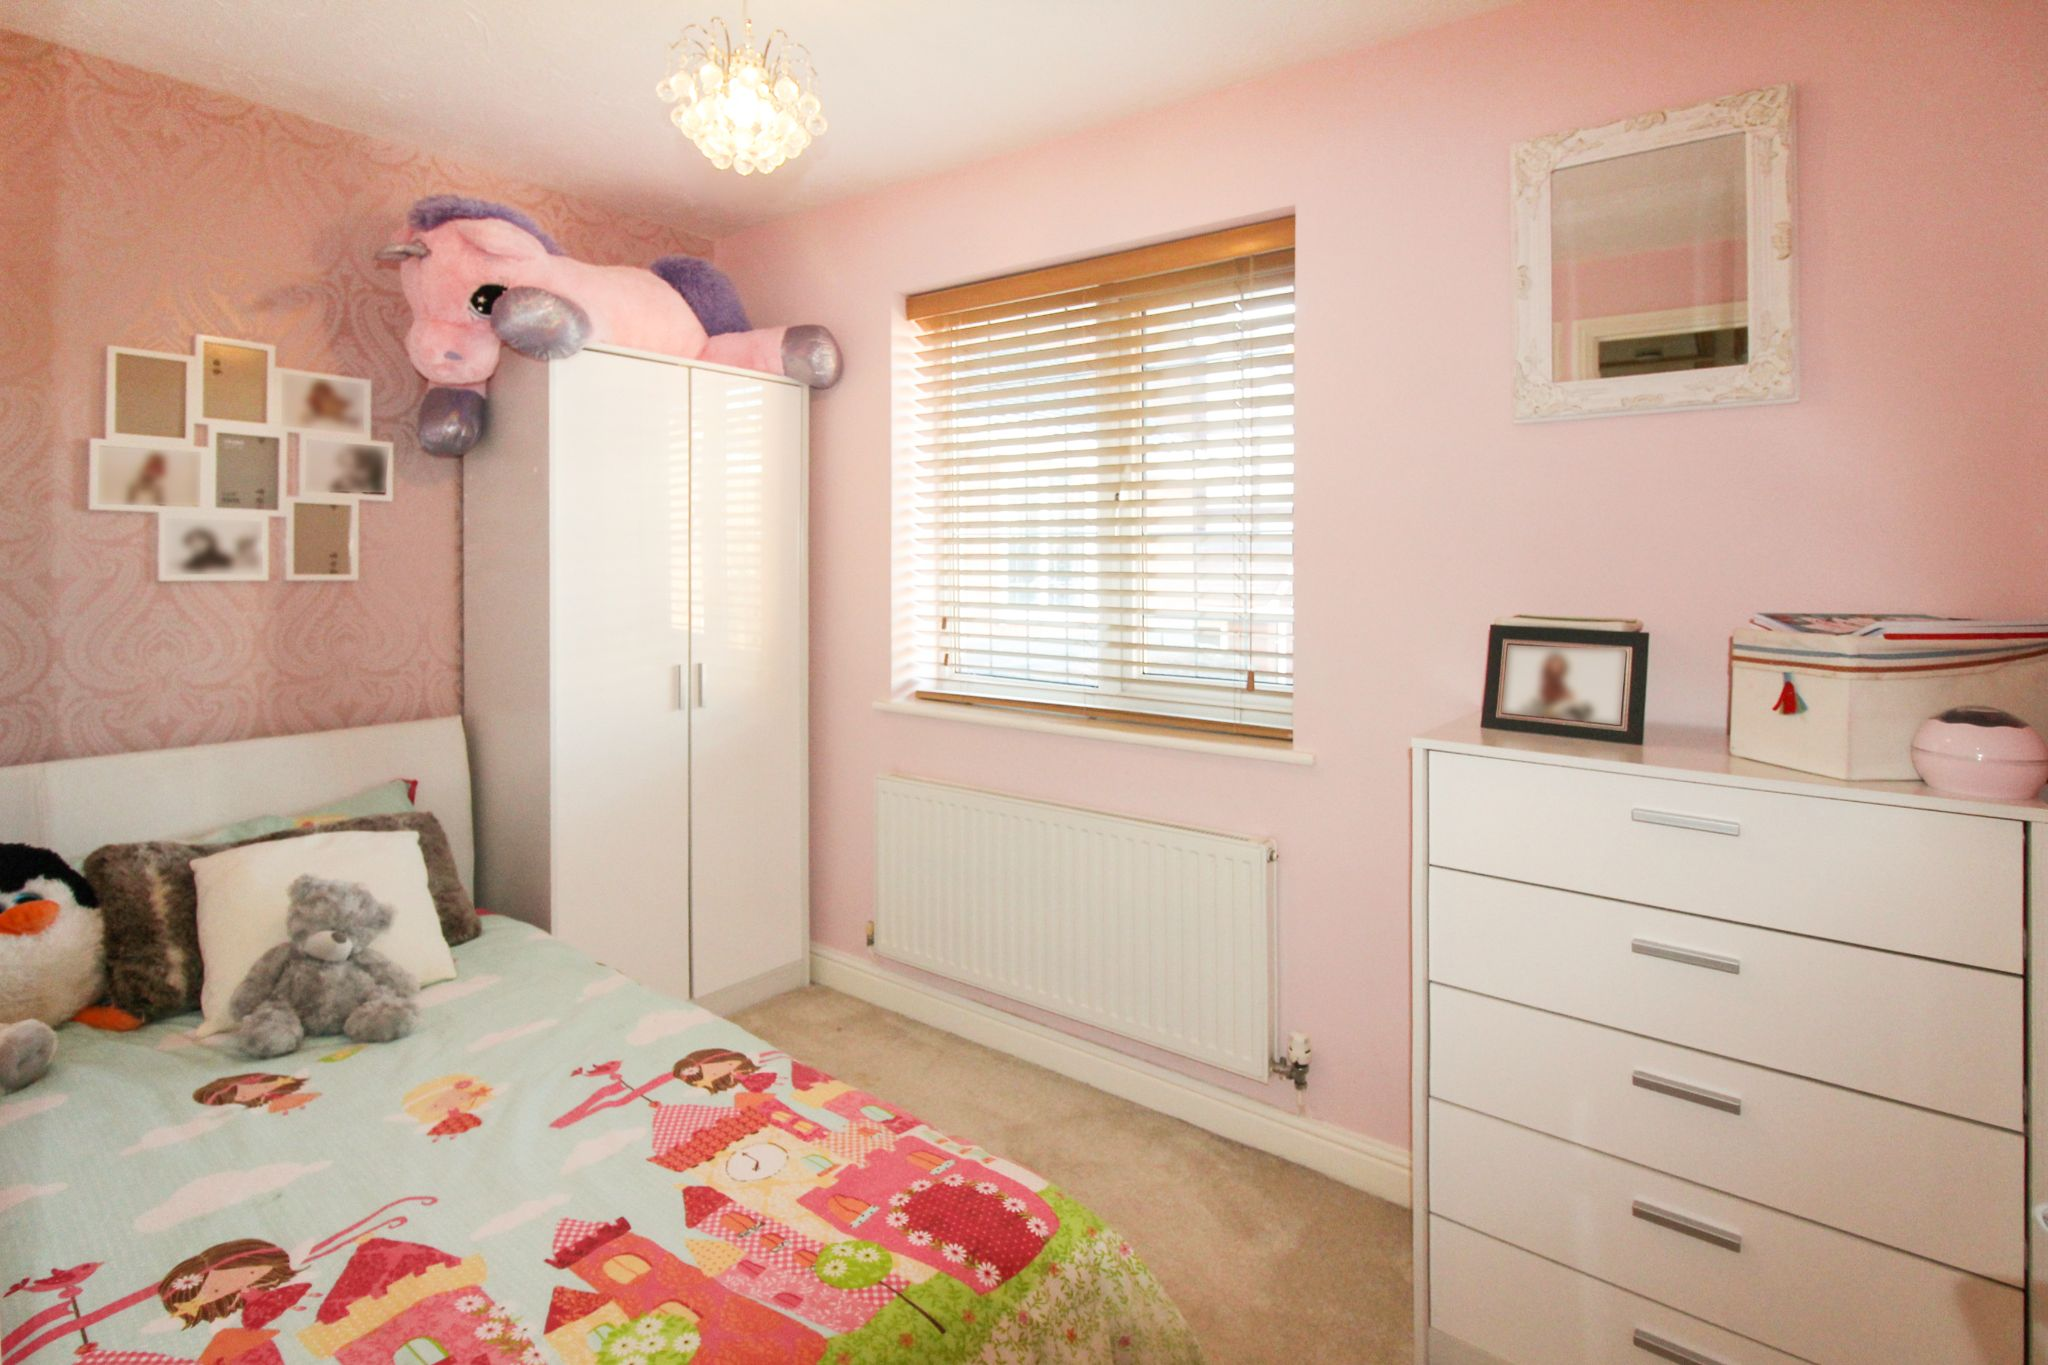 6 bedroom detached house SSTC in Solihull - Photograph 23.